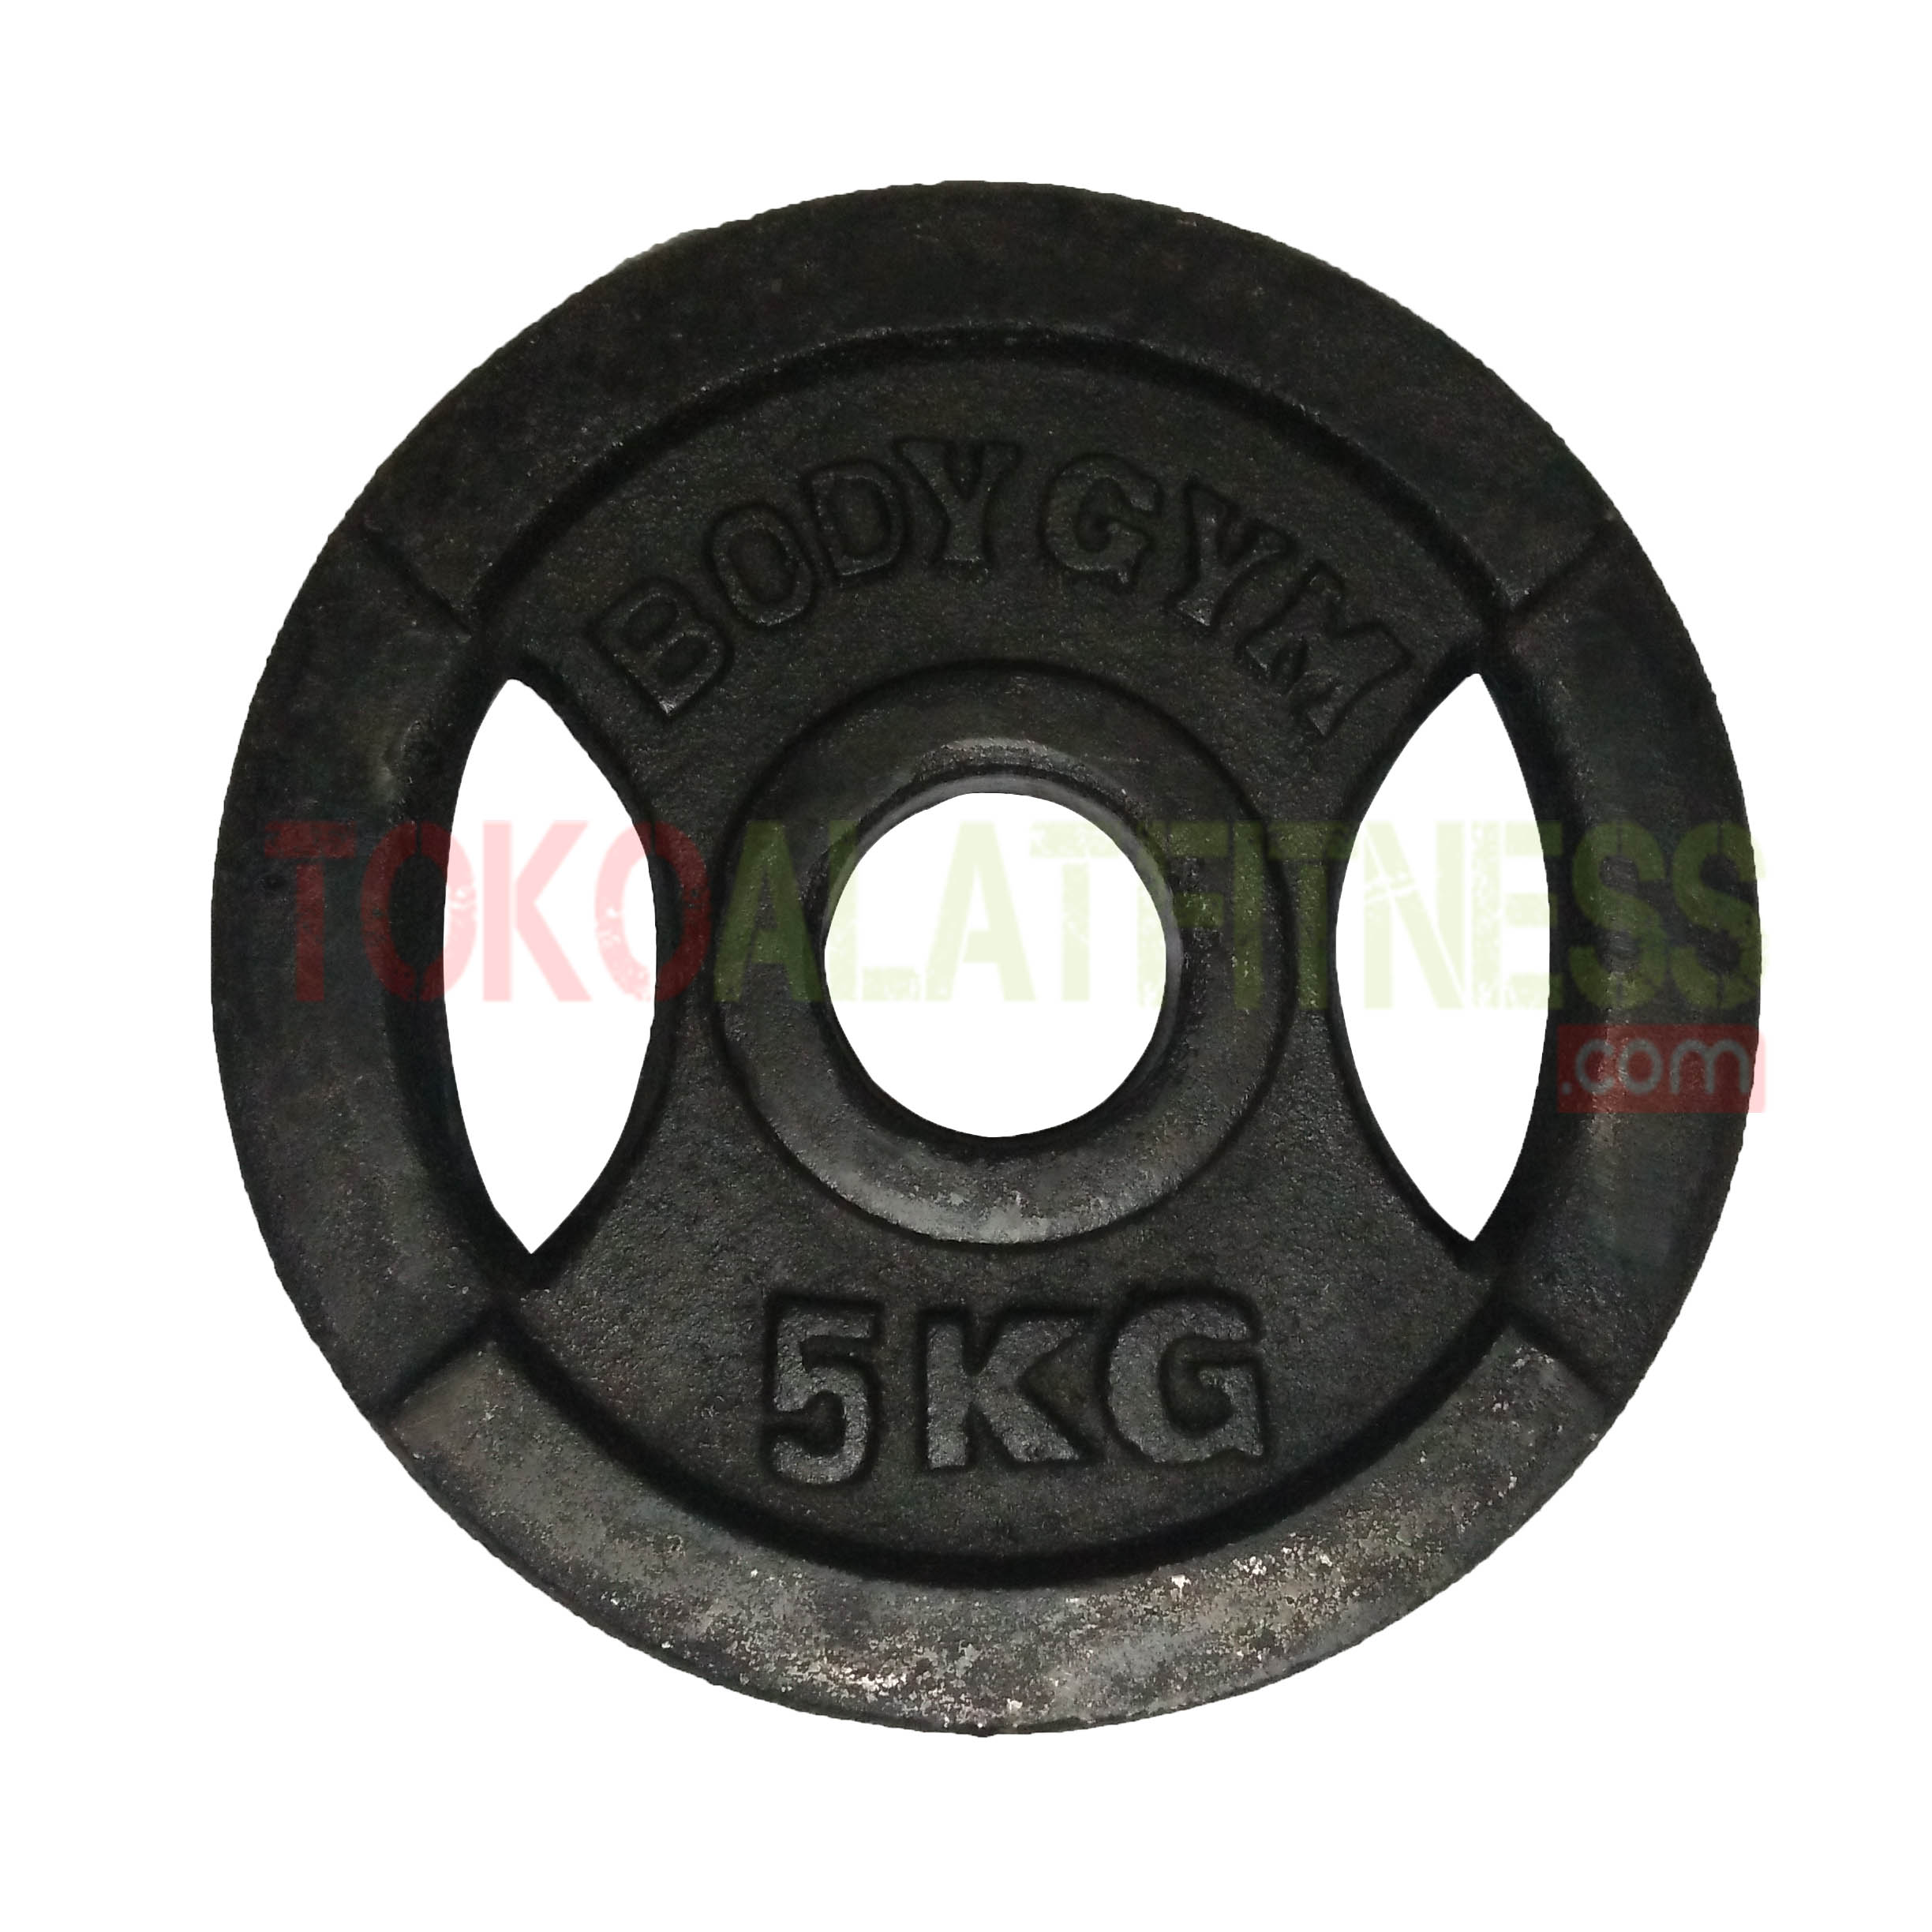 IRON PLATE 15 KG 5 CM - Iron Plate Grip 5cm 5kg, Barbel Plate Besi Body Gym